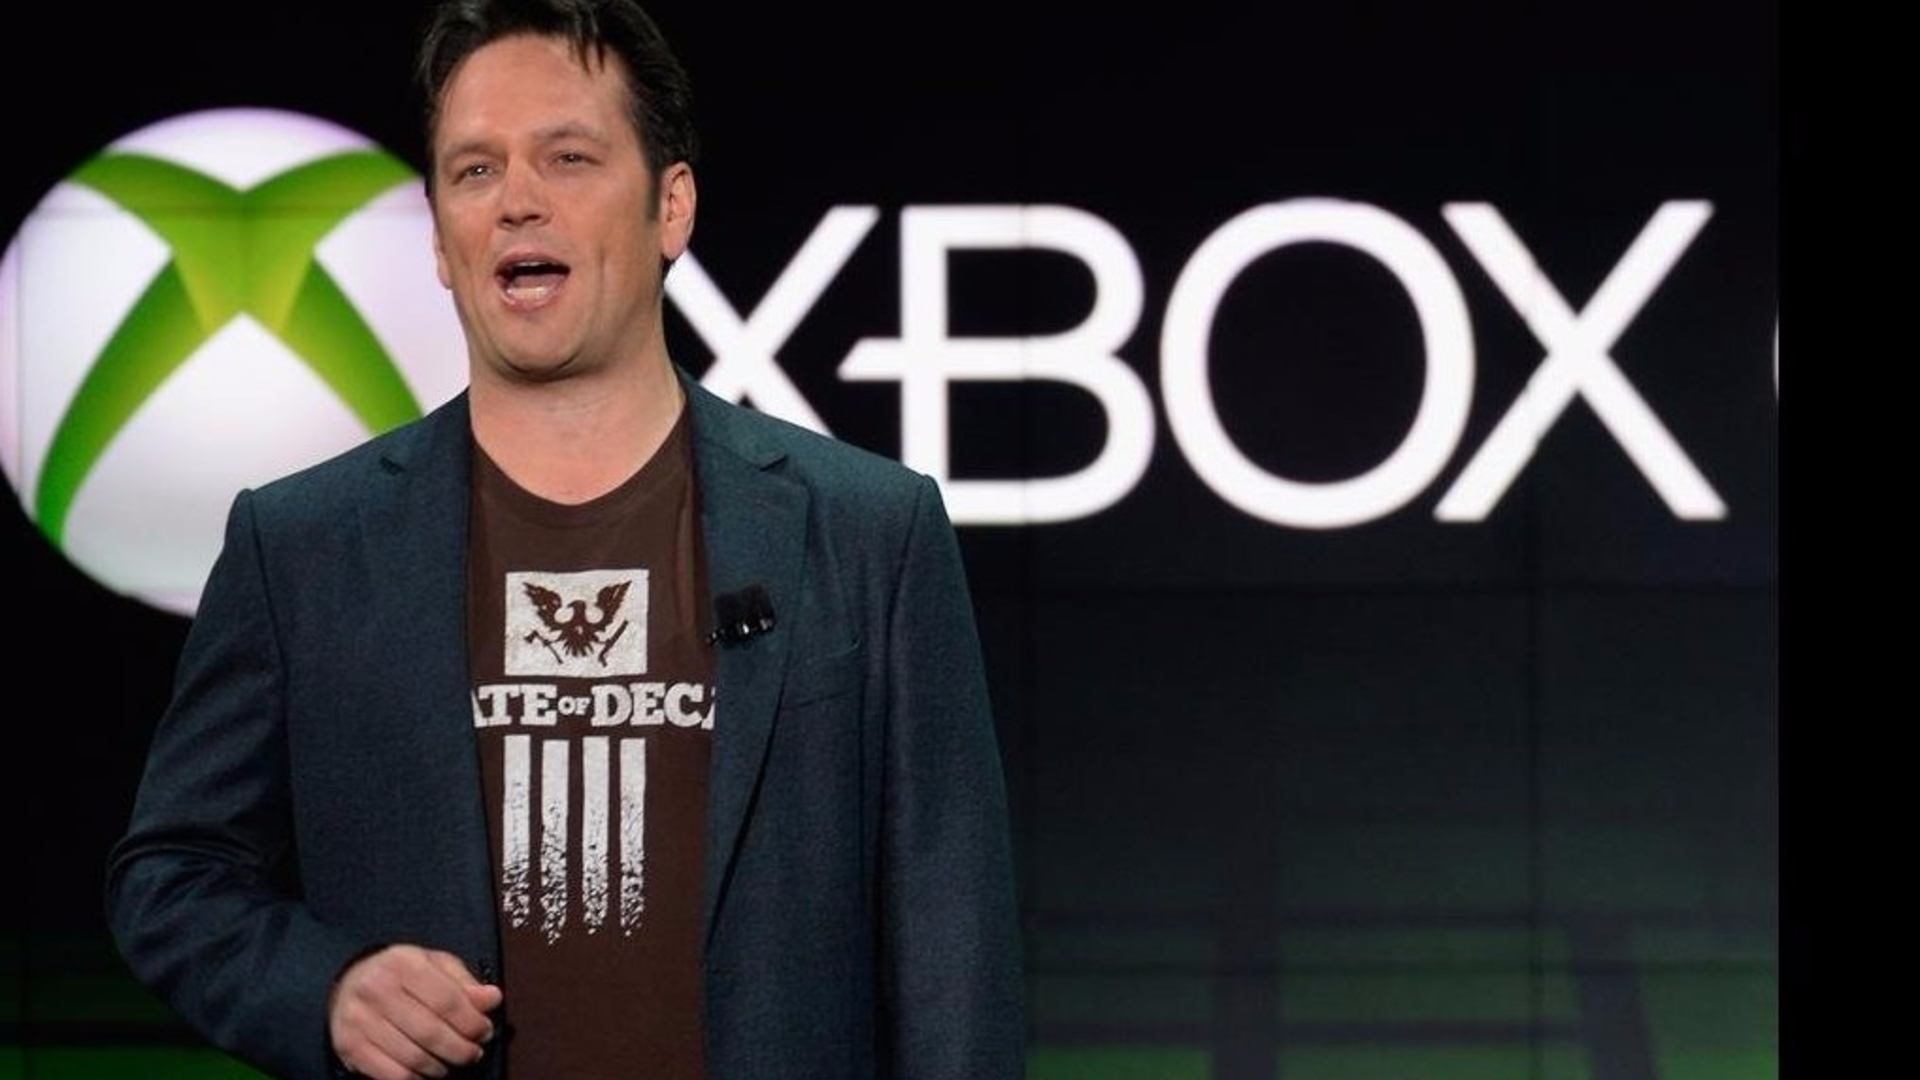 We now have a clearer picture of how Xbox One is doing